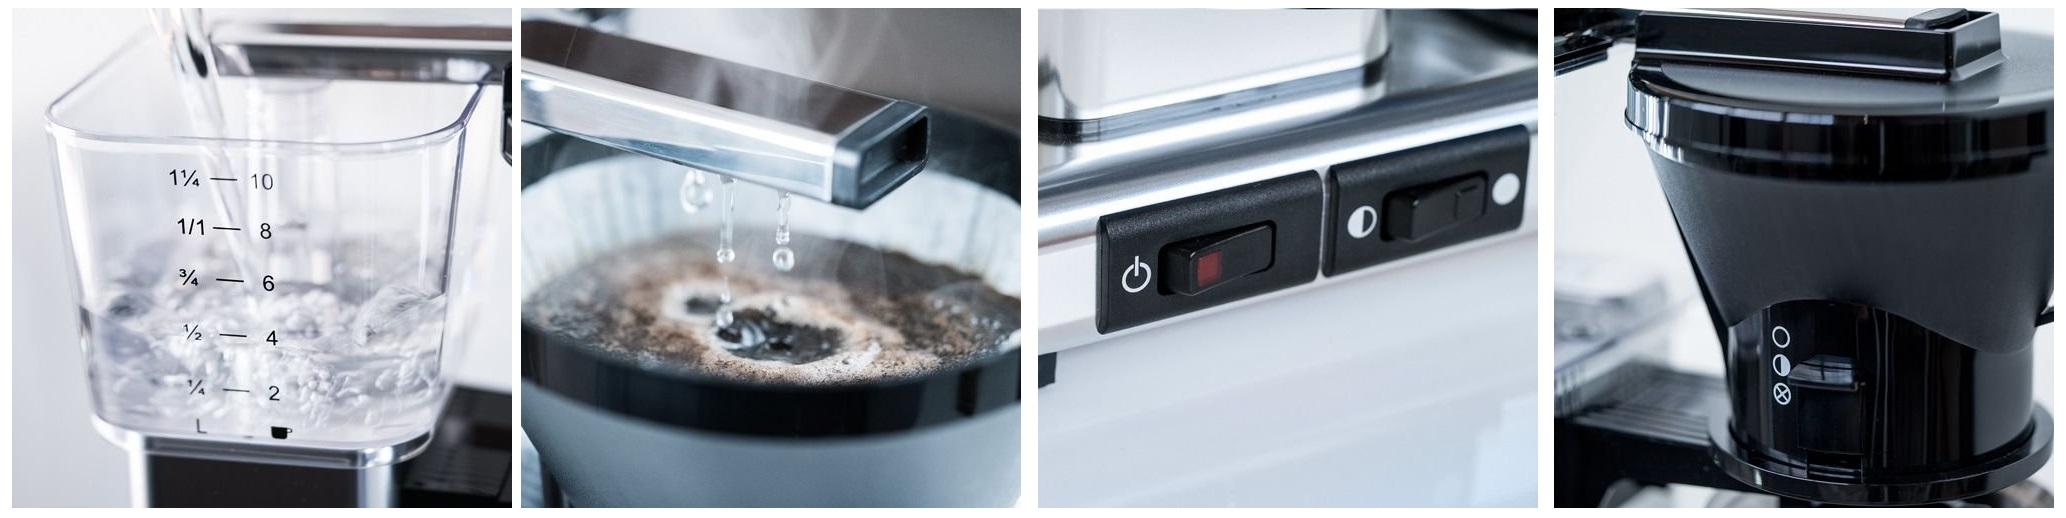 Technivorm Moccamaster 59691 Coffee Machine Review